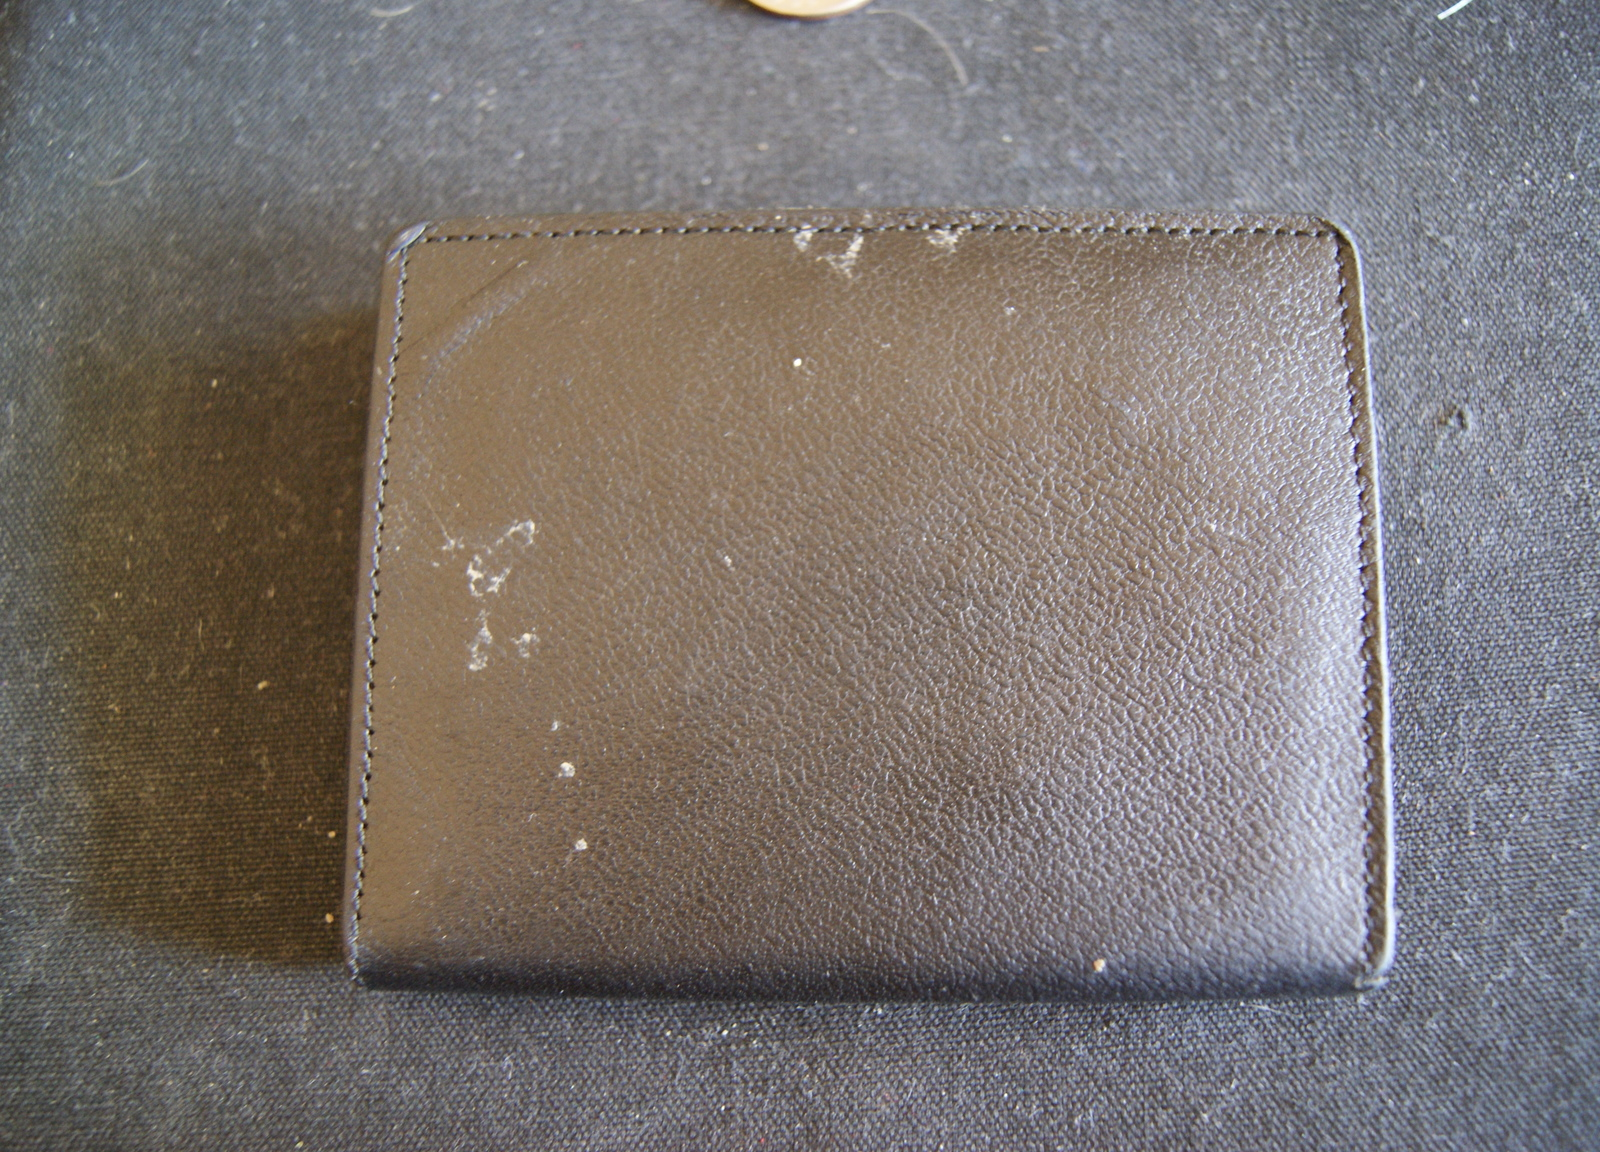 Beverly Hills Cal,Scarce Antique Police Badge W/ Wallet,.Hmk L.A Rubber Stamp Co image 13